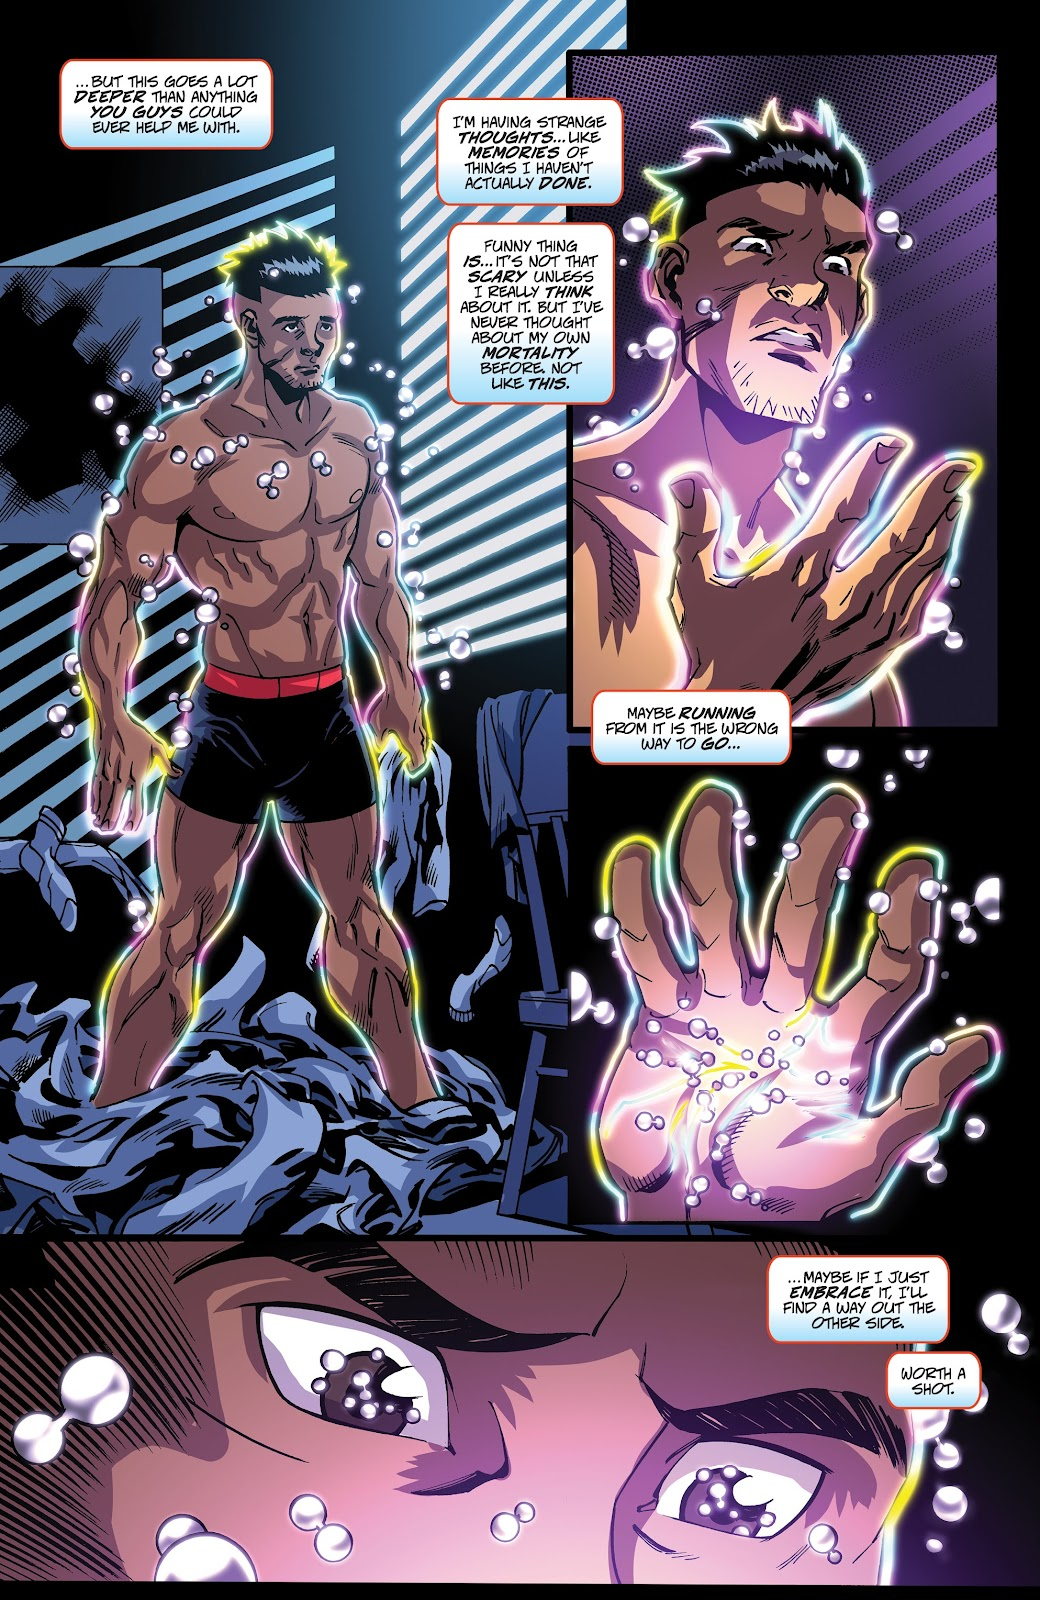 Read online Accell comic -  Issue #17 - 14